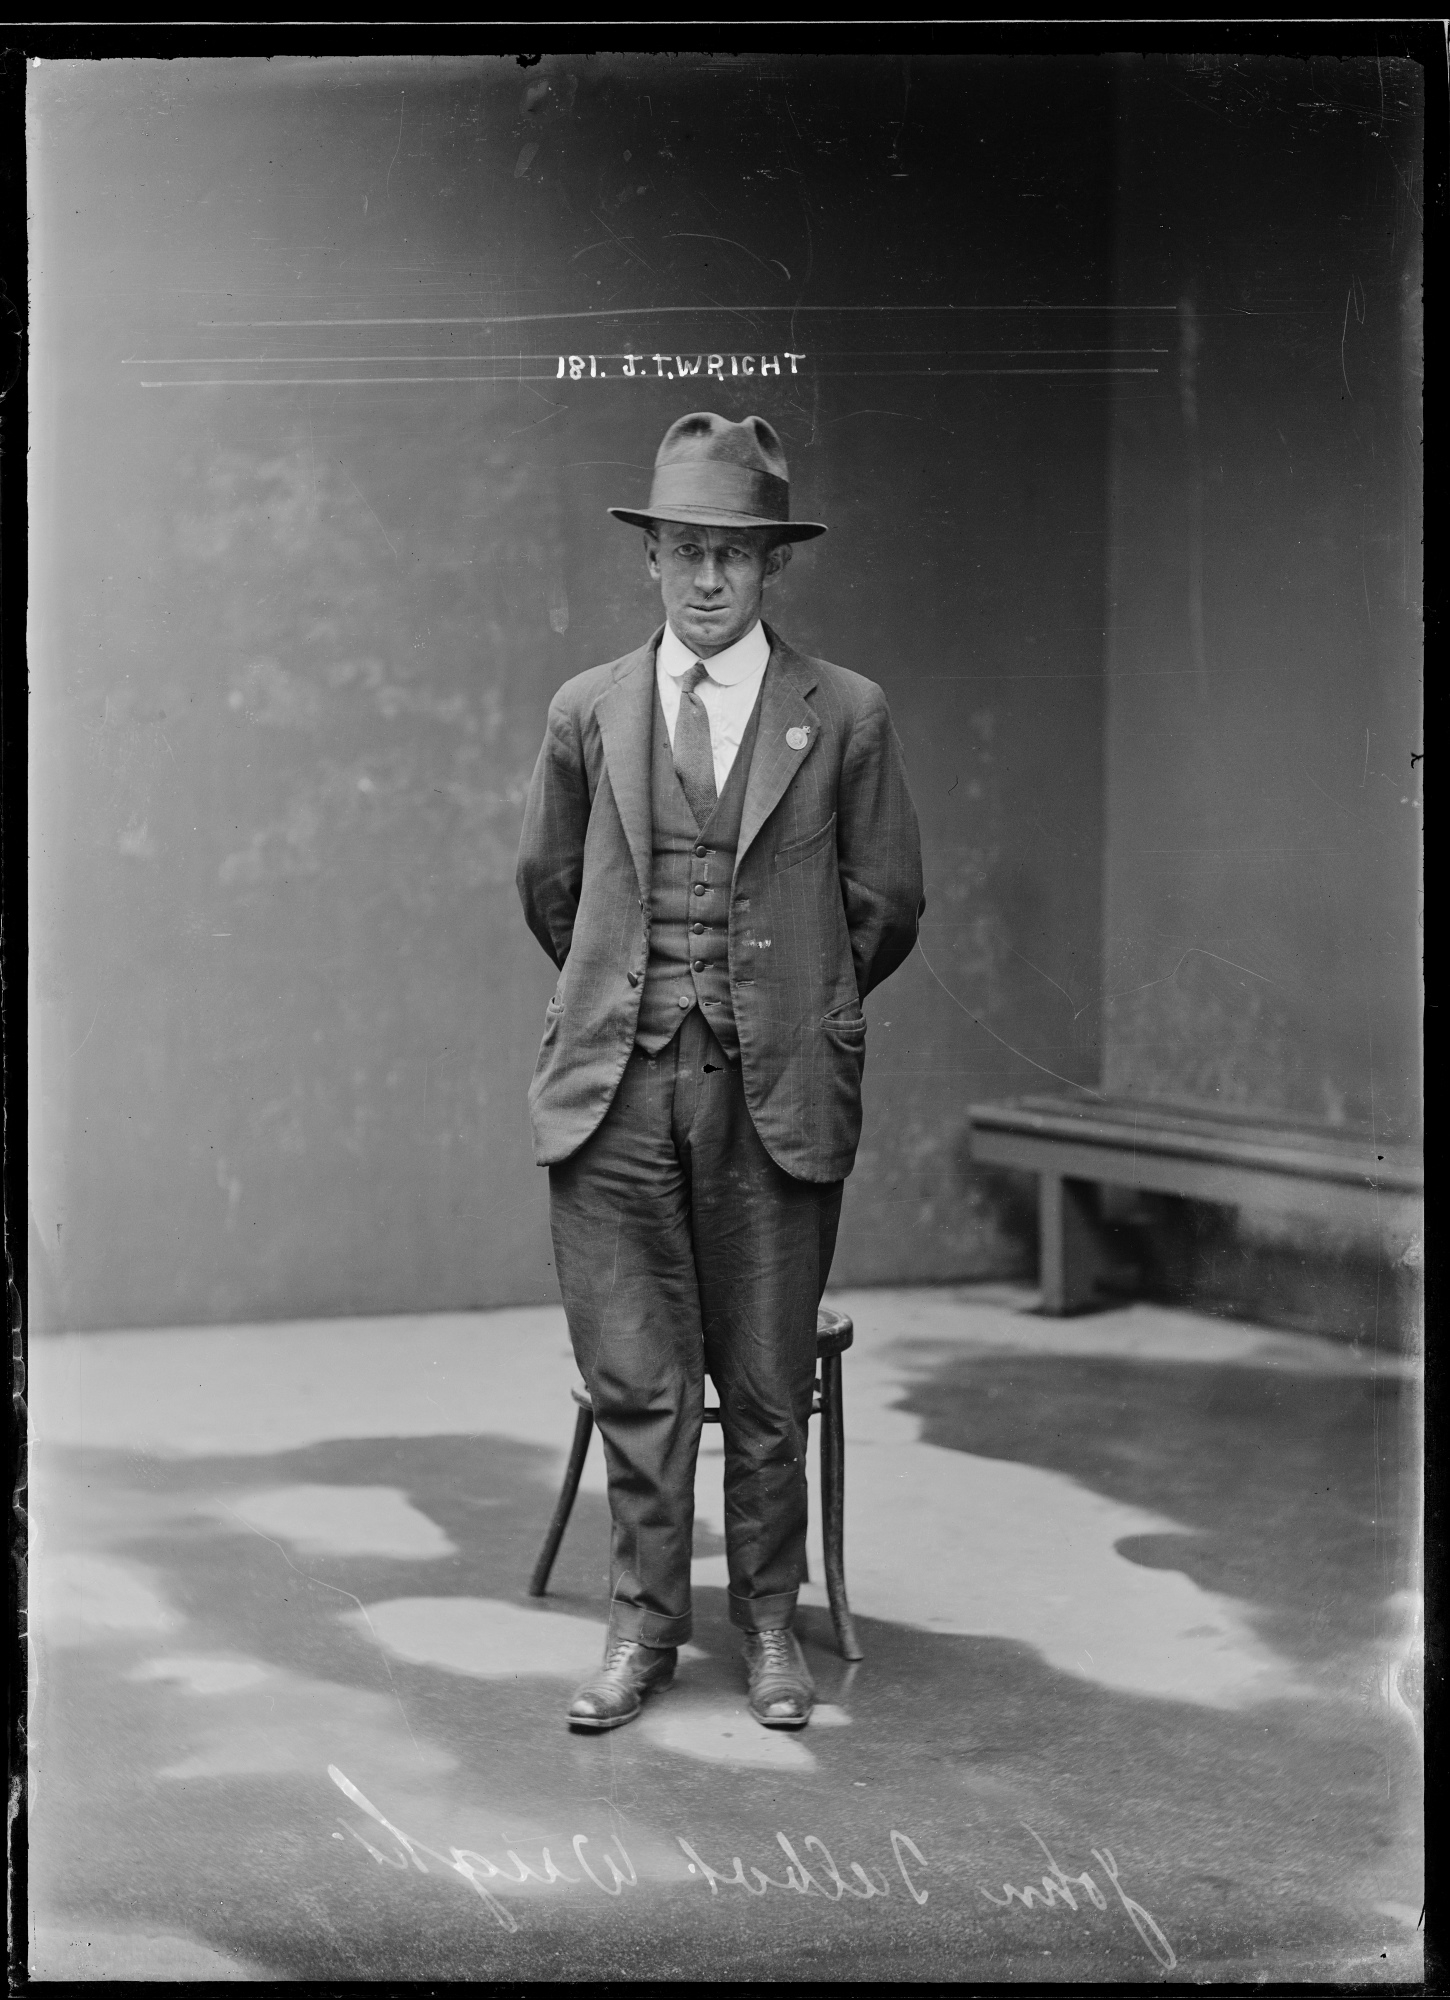 Full length police photo of man in suit and hat, standing in front of chair.